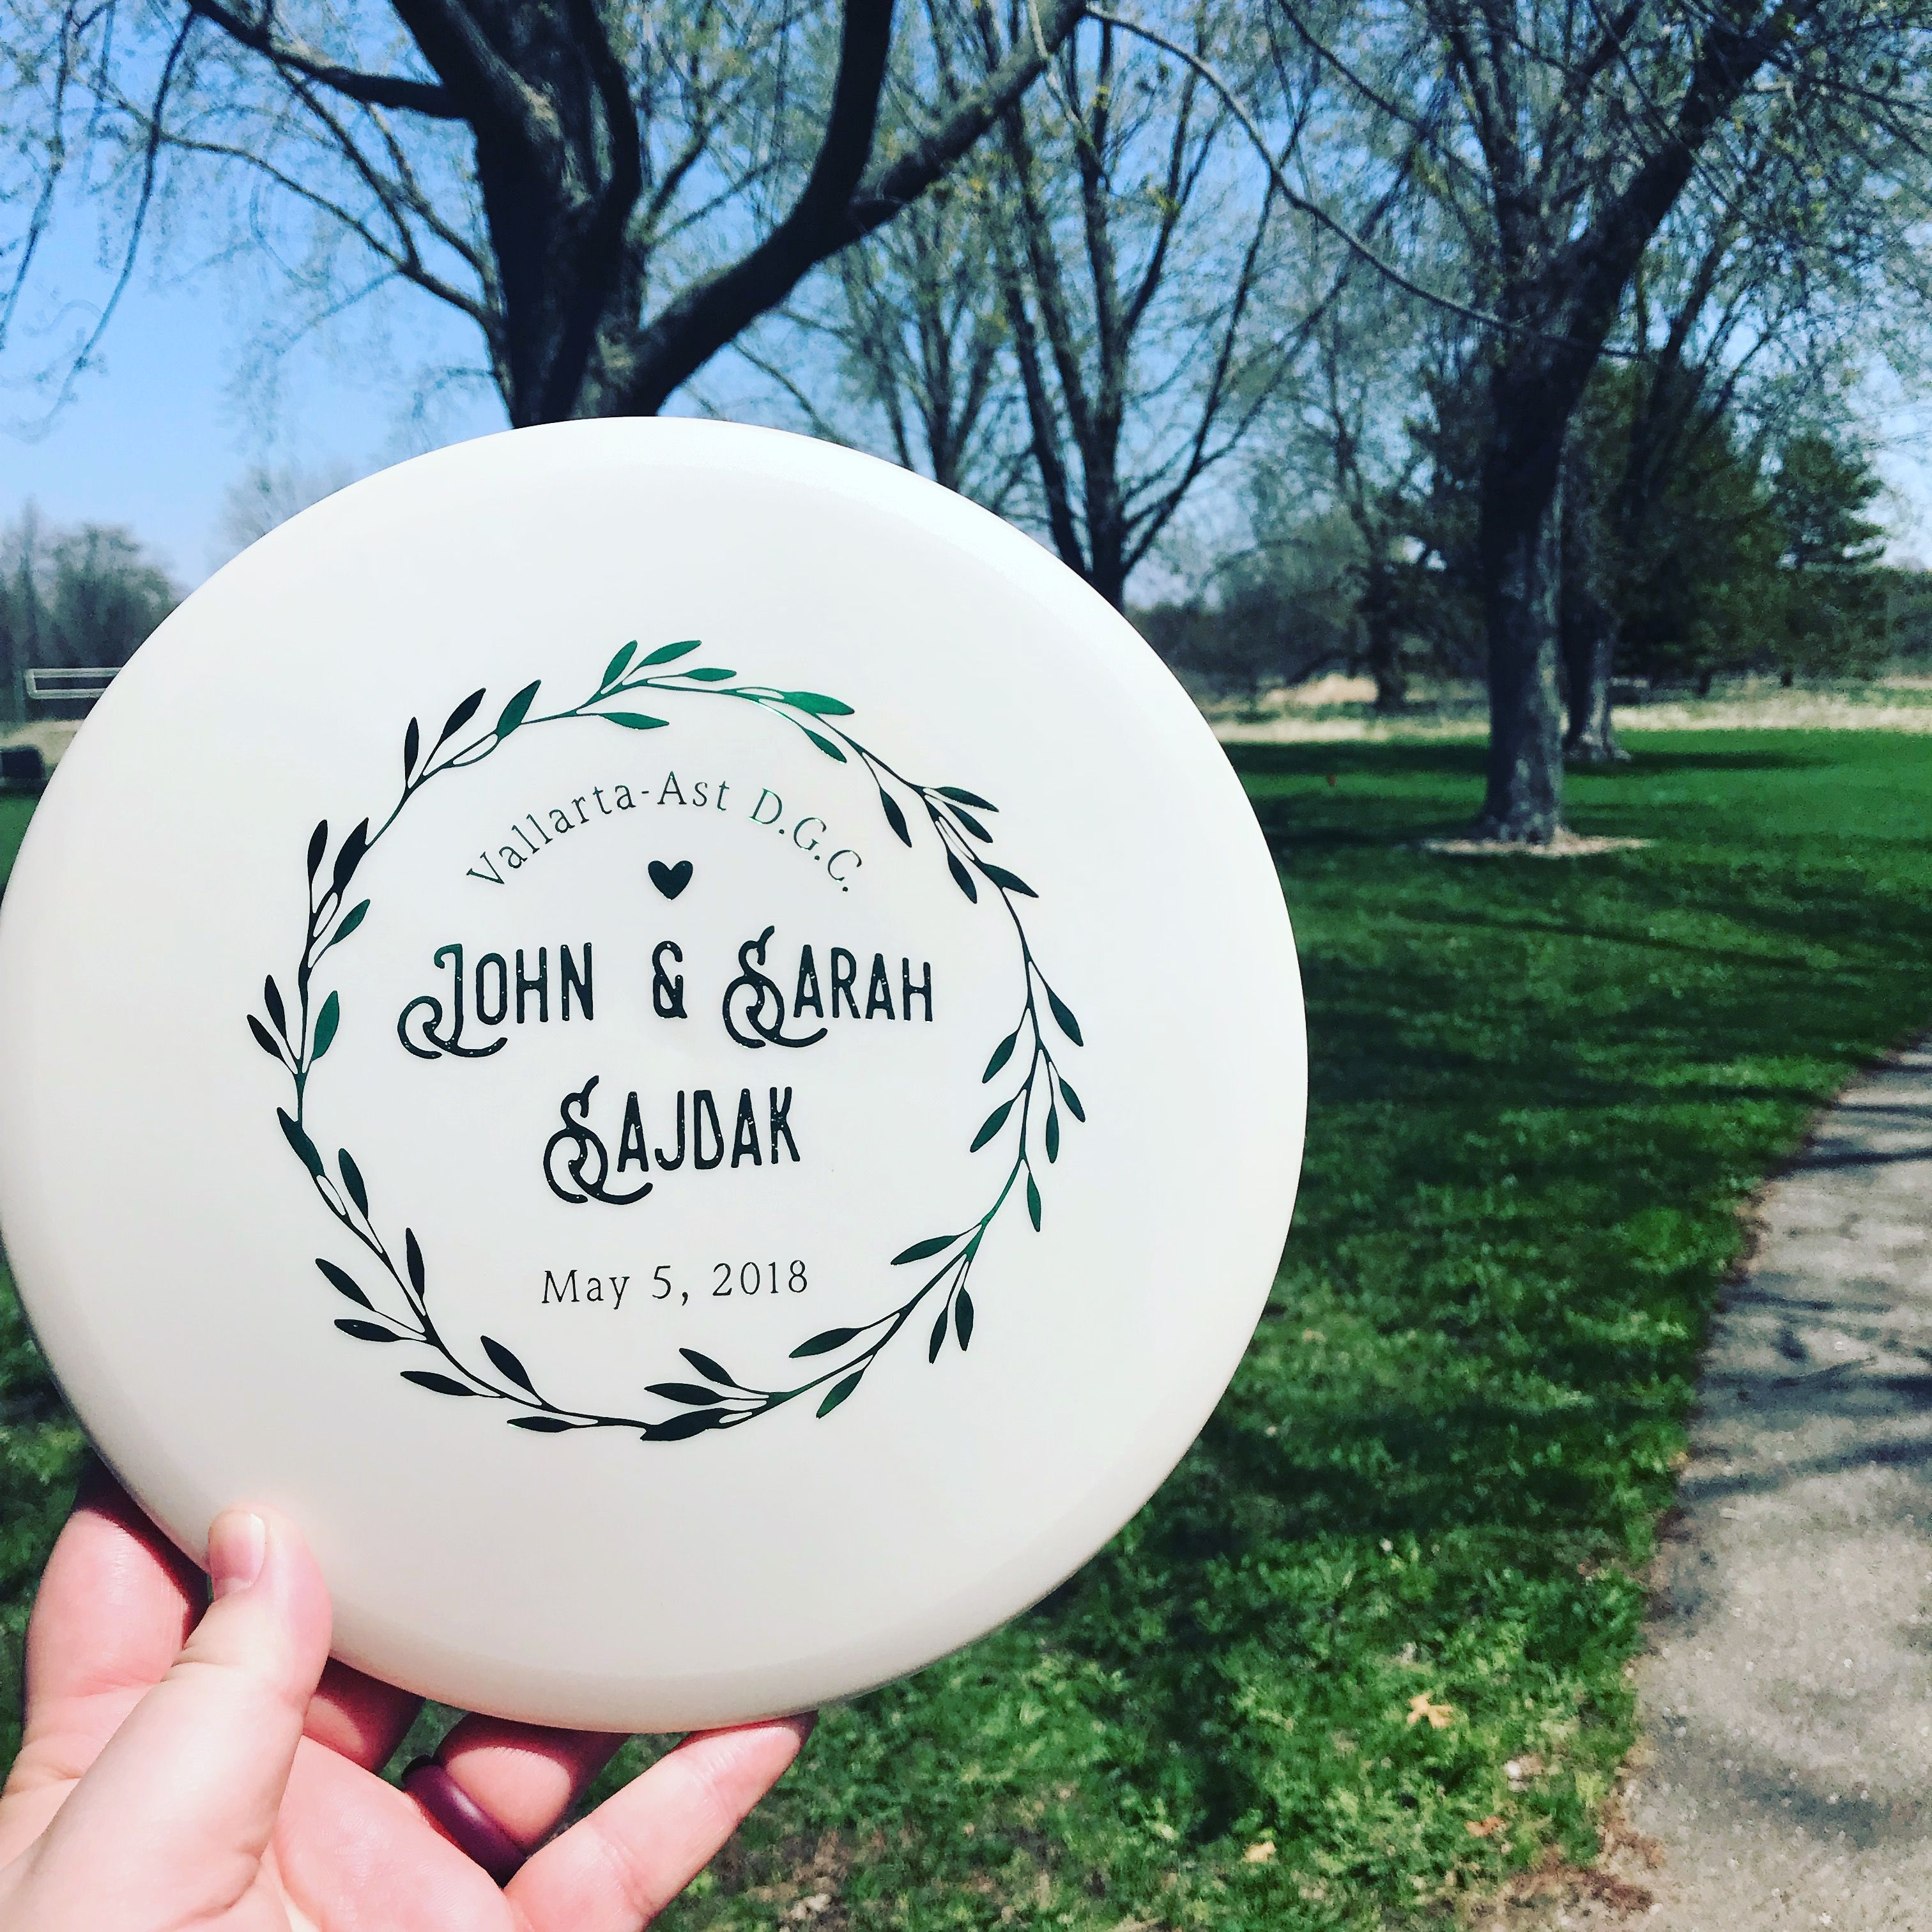 Wedding favor ideas for a park wedding: customized disc golf putters ...